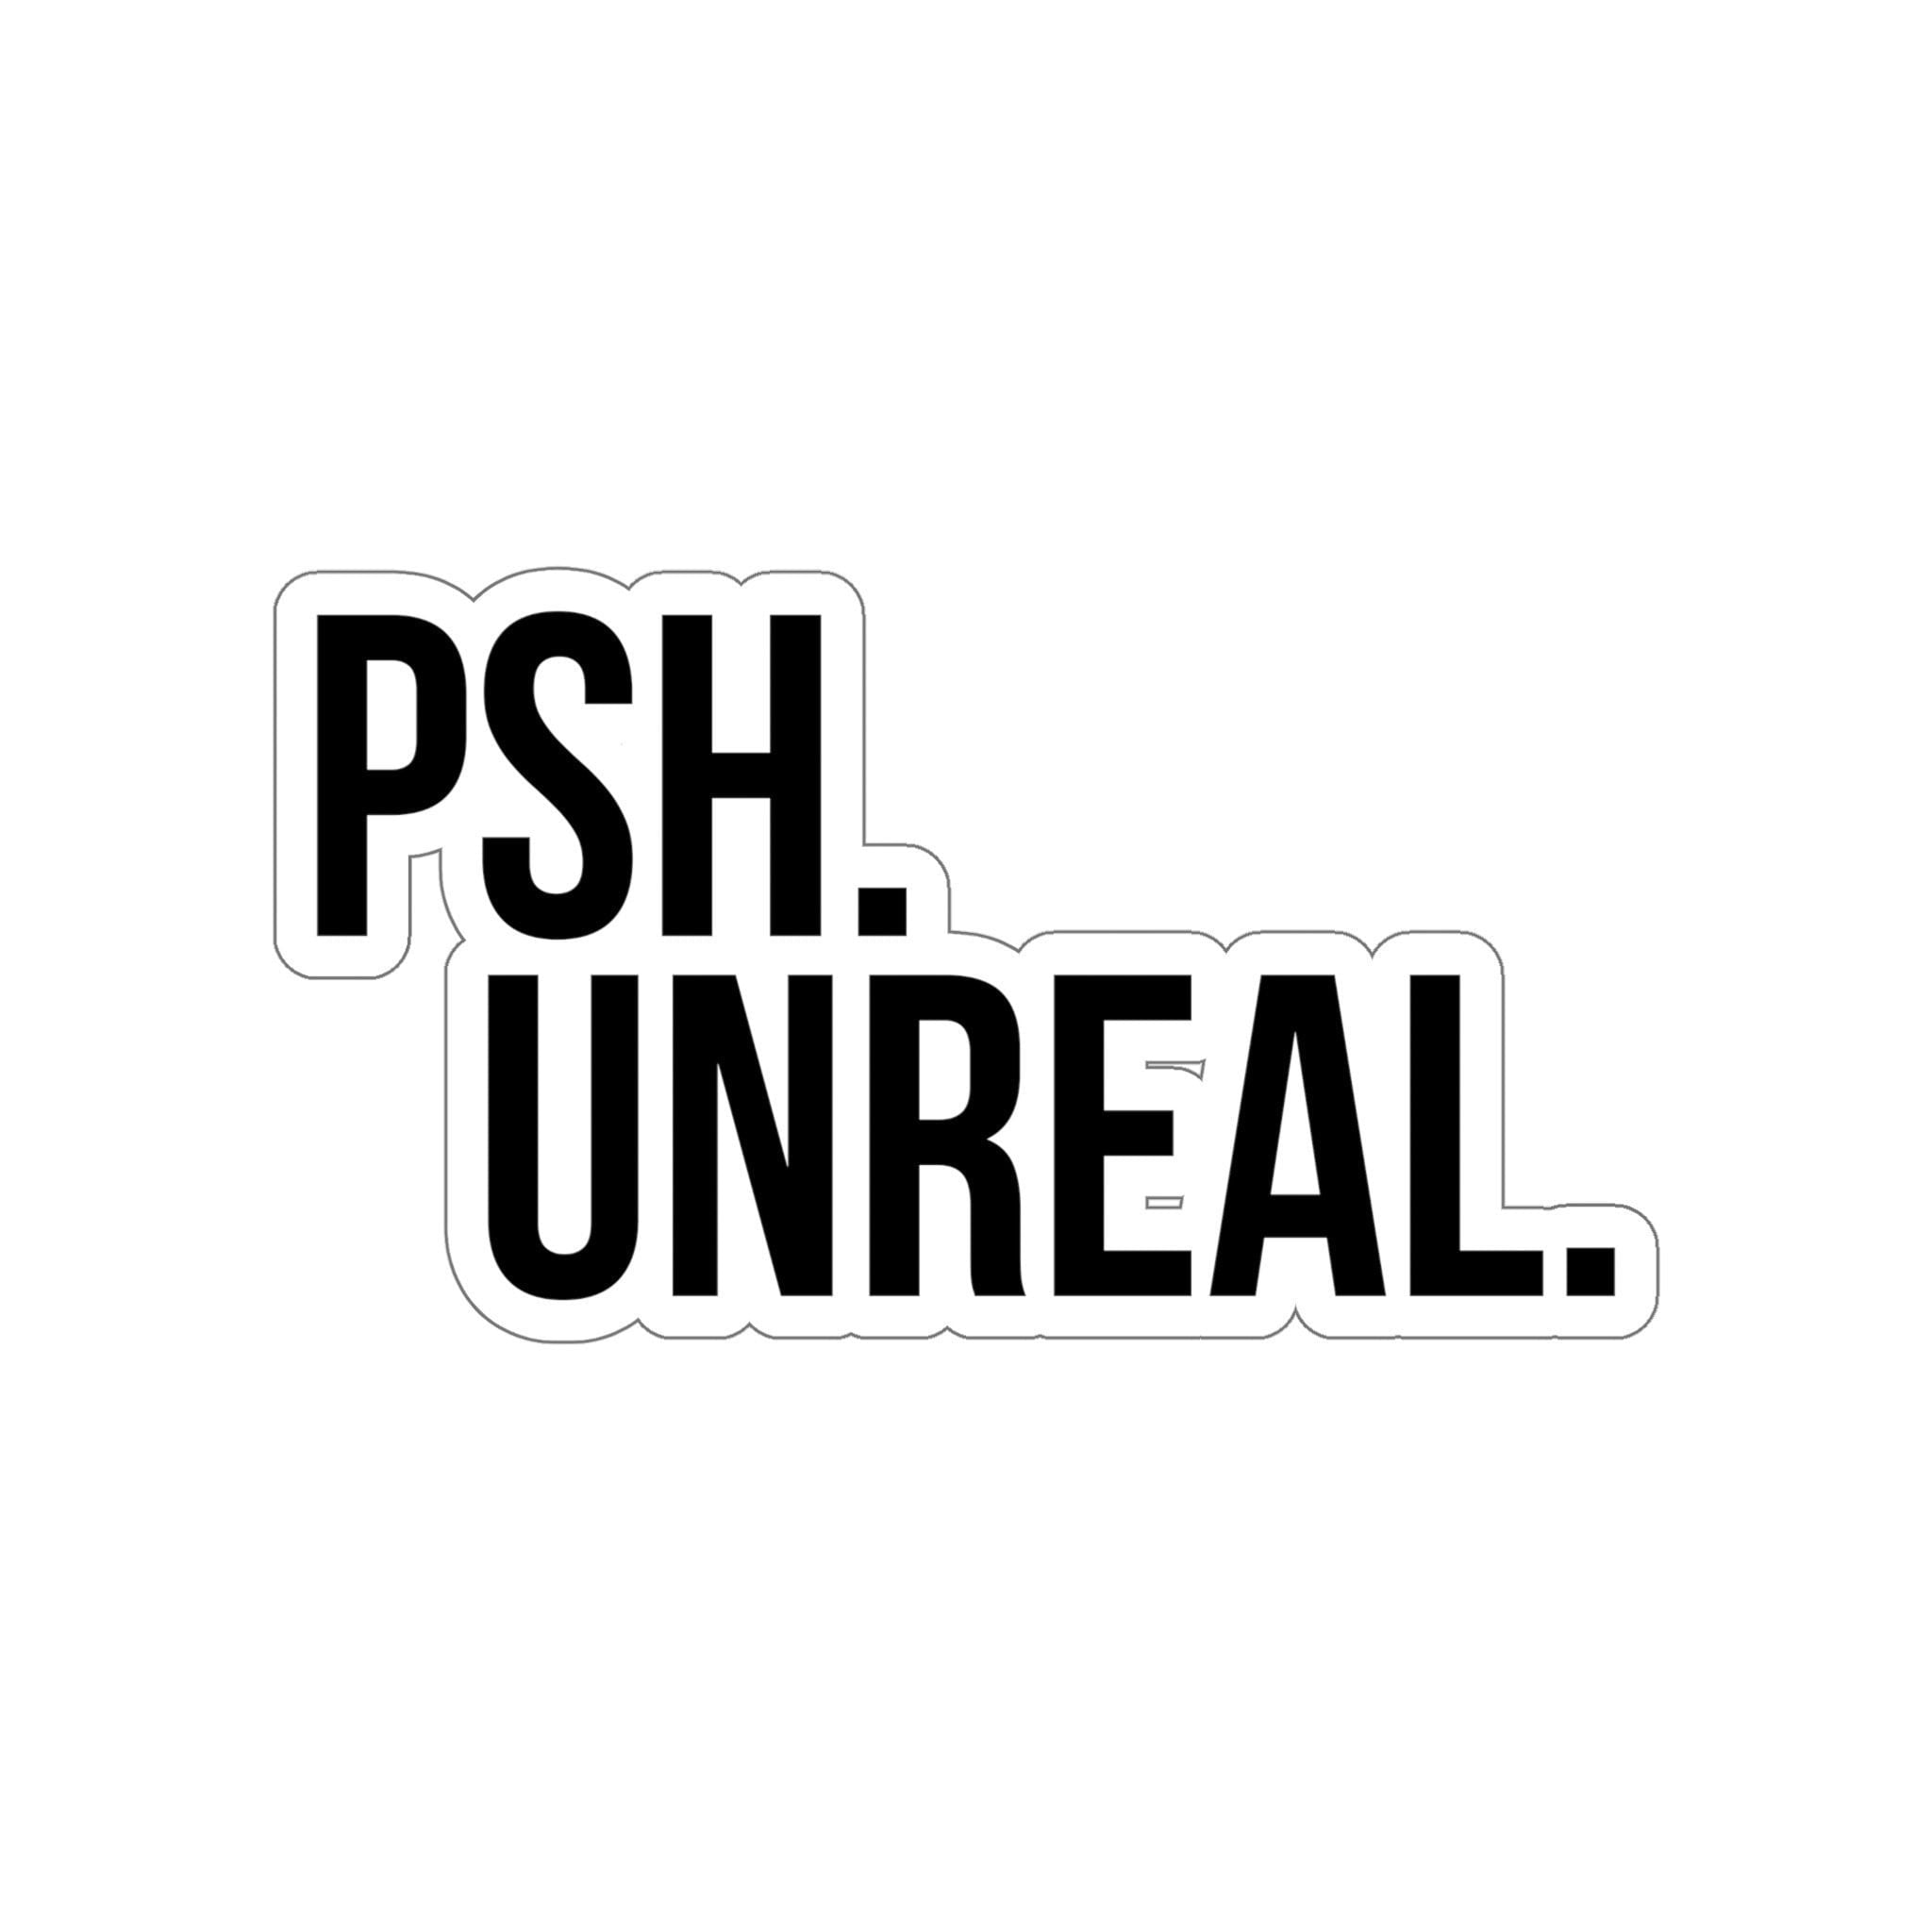 psh unreal quote sticker decal white